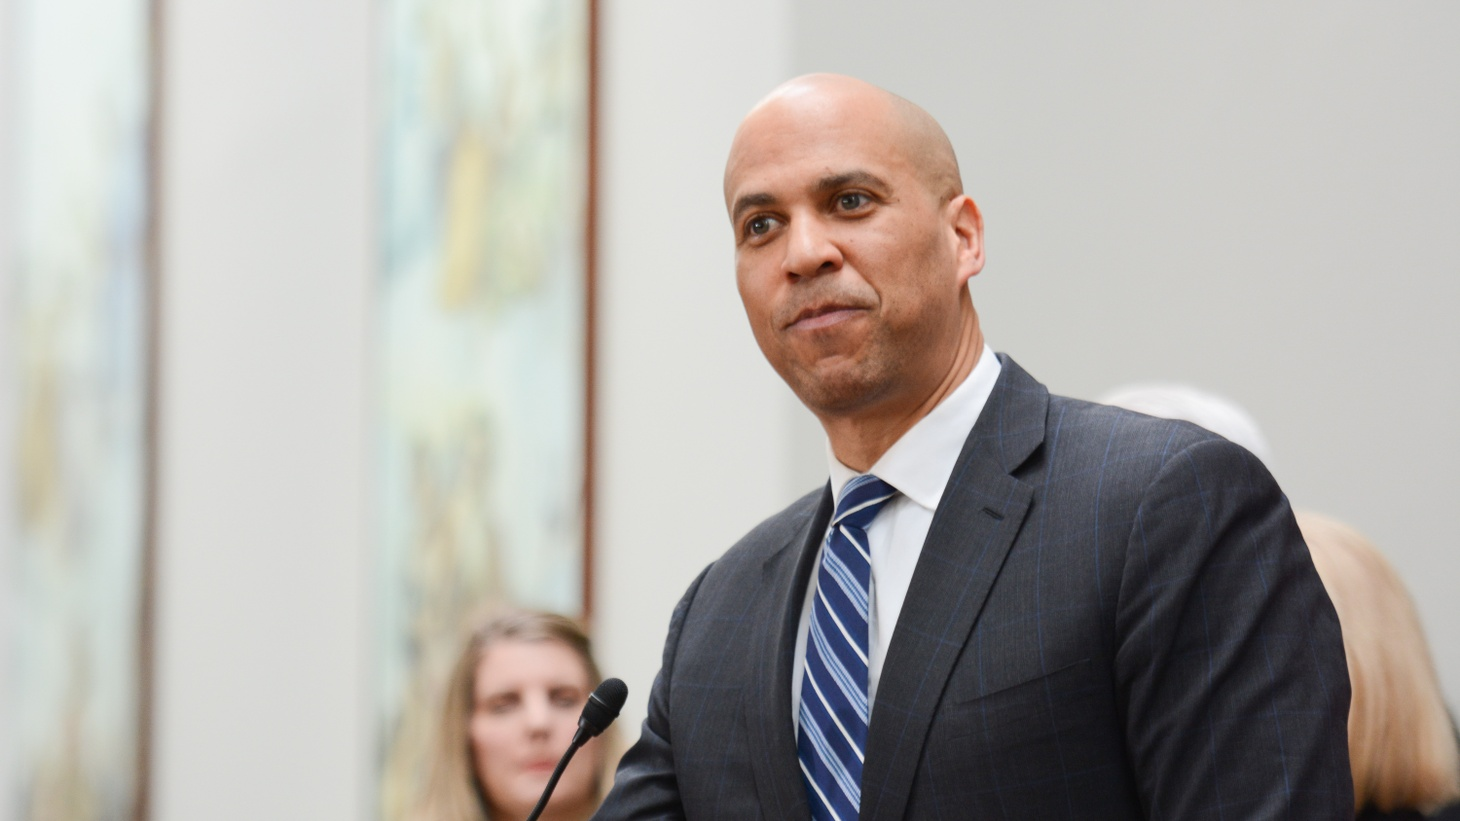 Cory Booker at a press conference on expanding social security, February 2019.